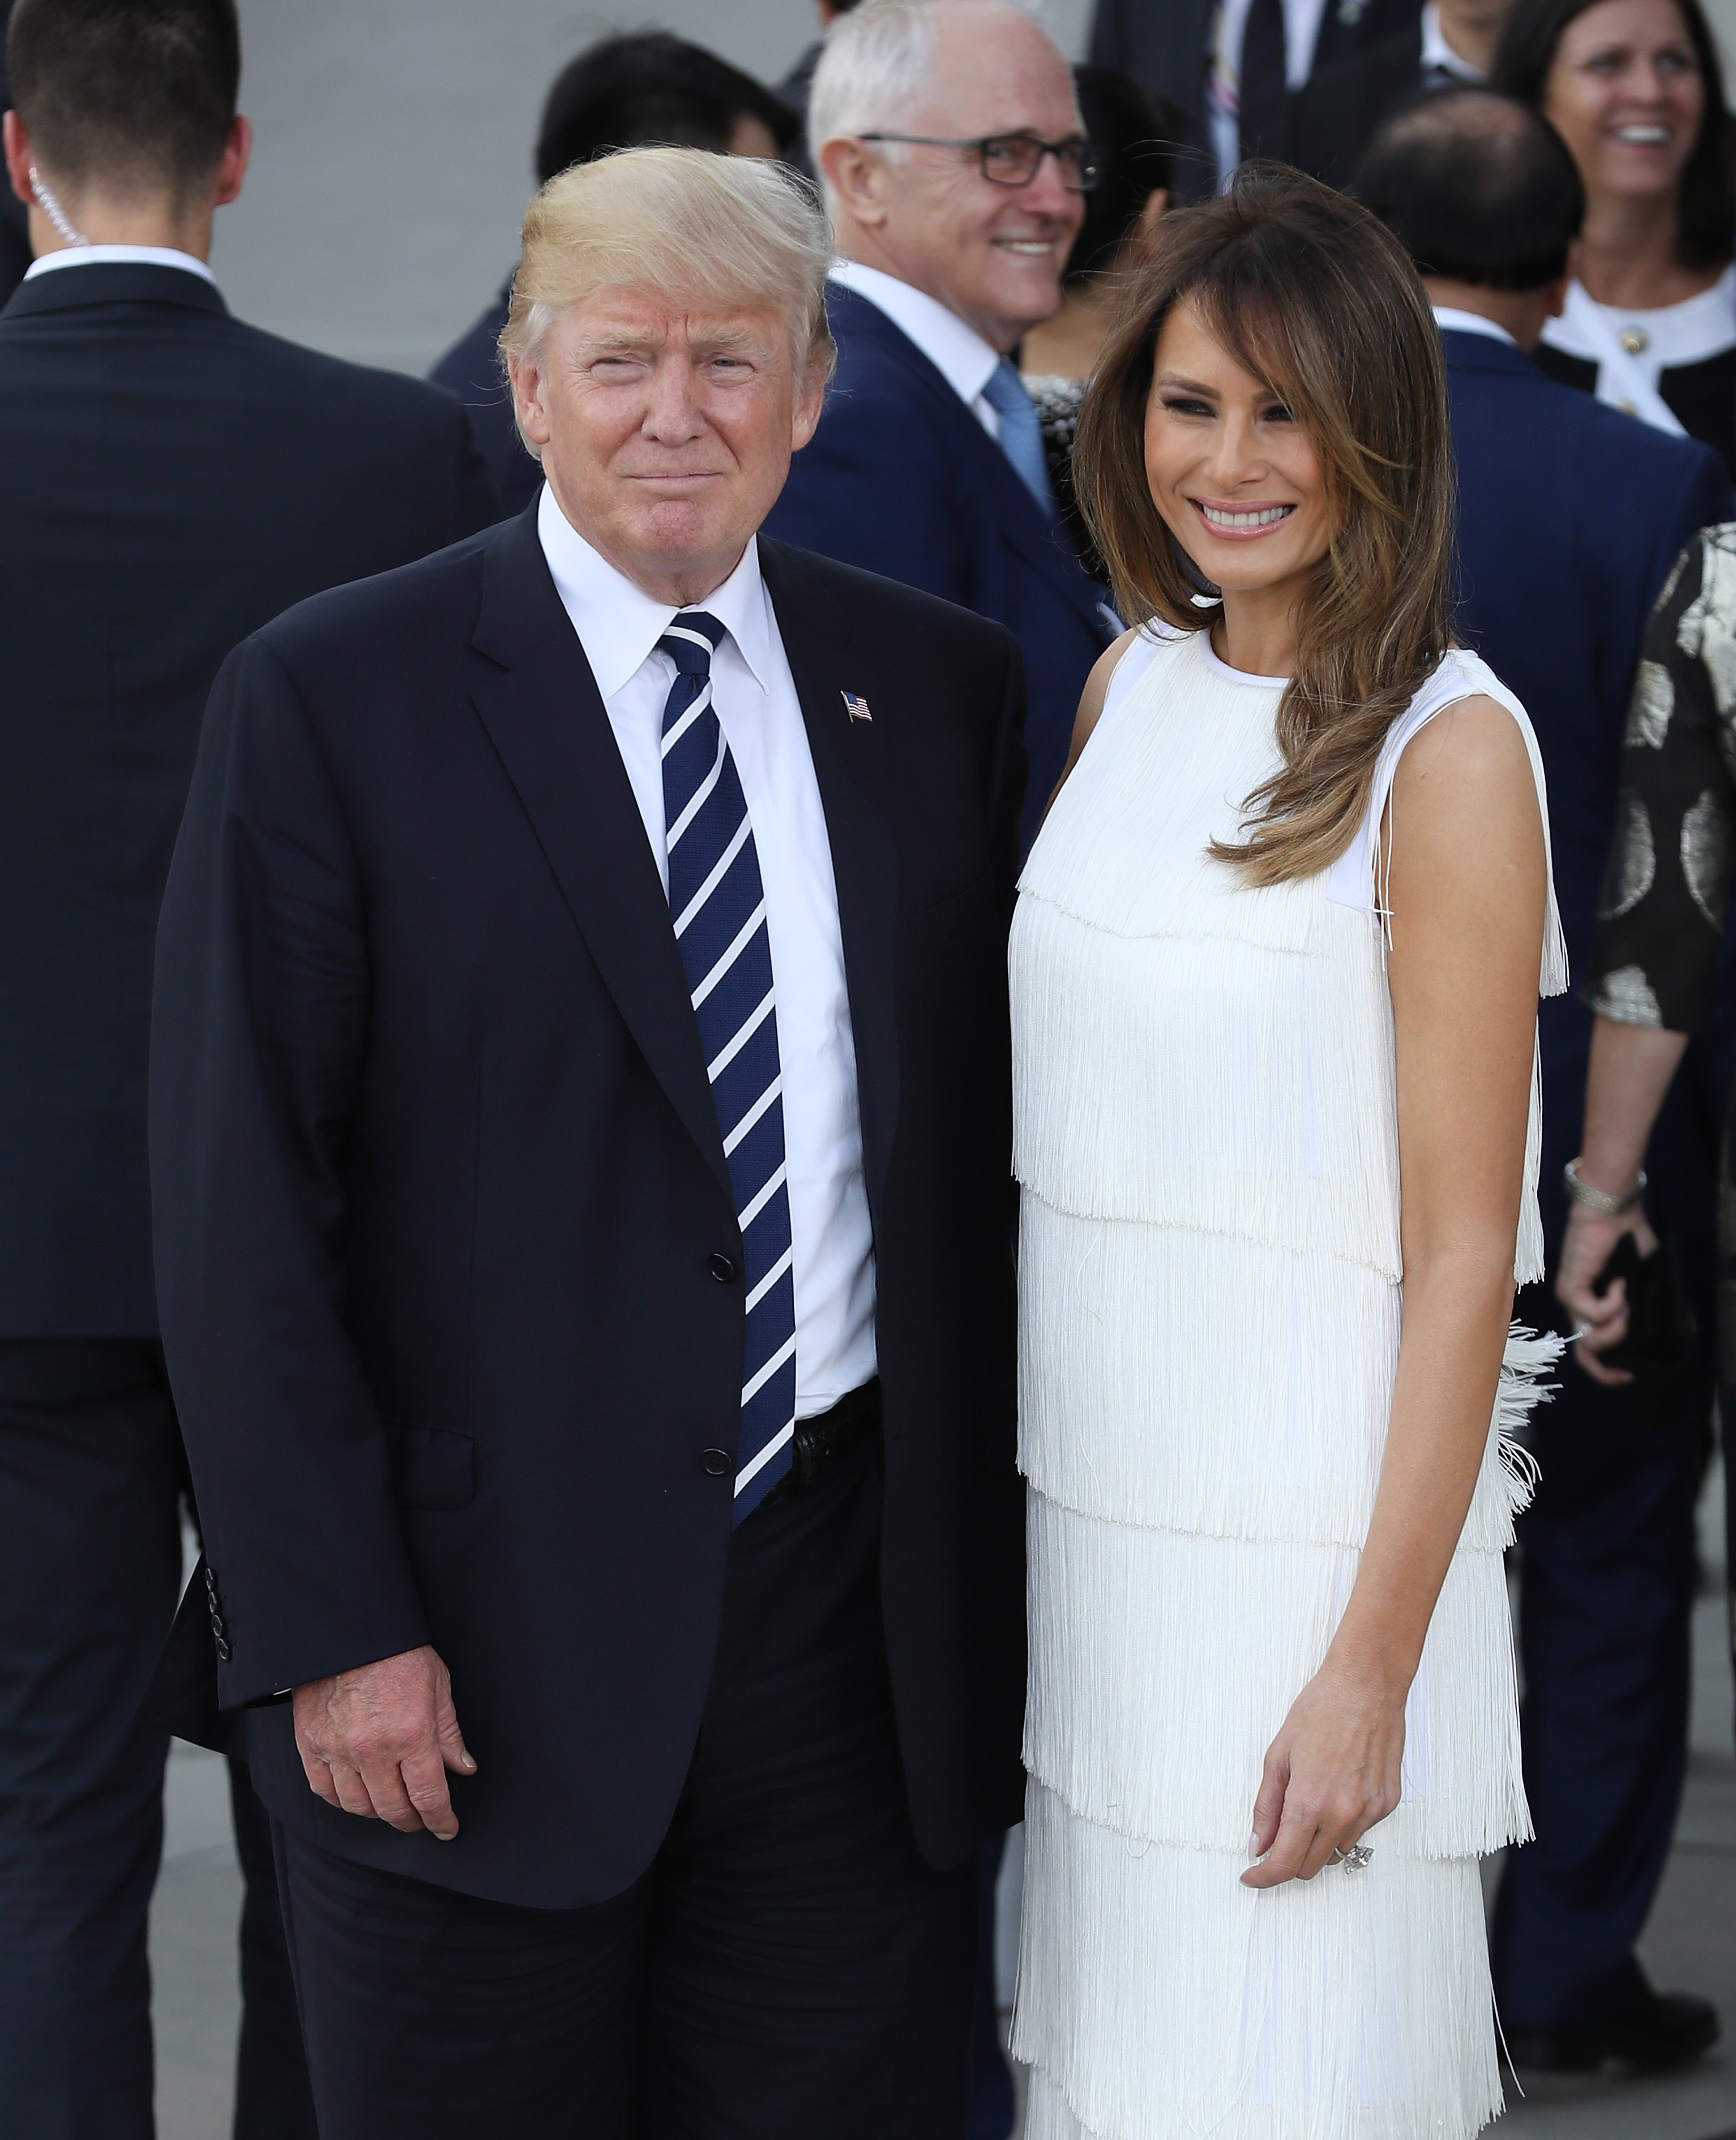 Donald and Melania Trump at the 2017 G20 economic summit in Hamburg, Germany   Photo: Getty Images